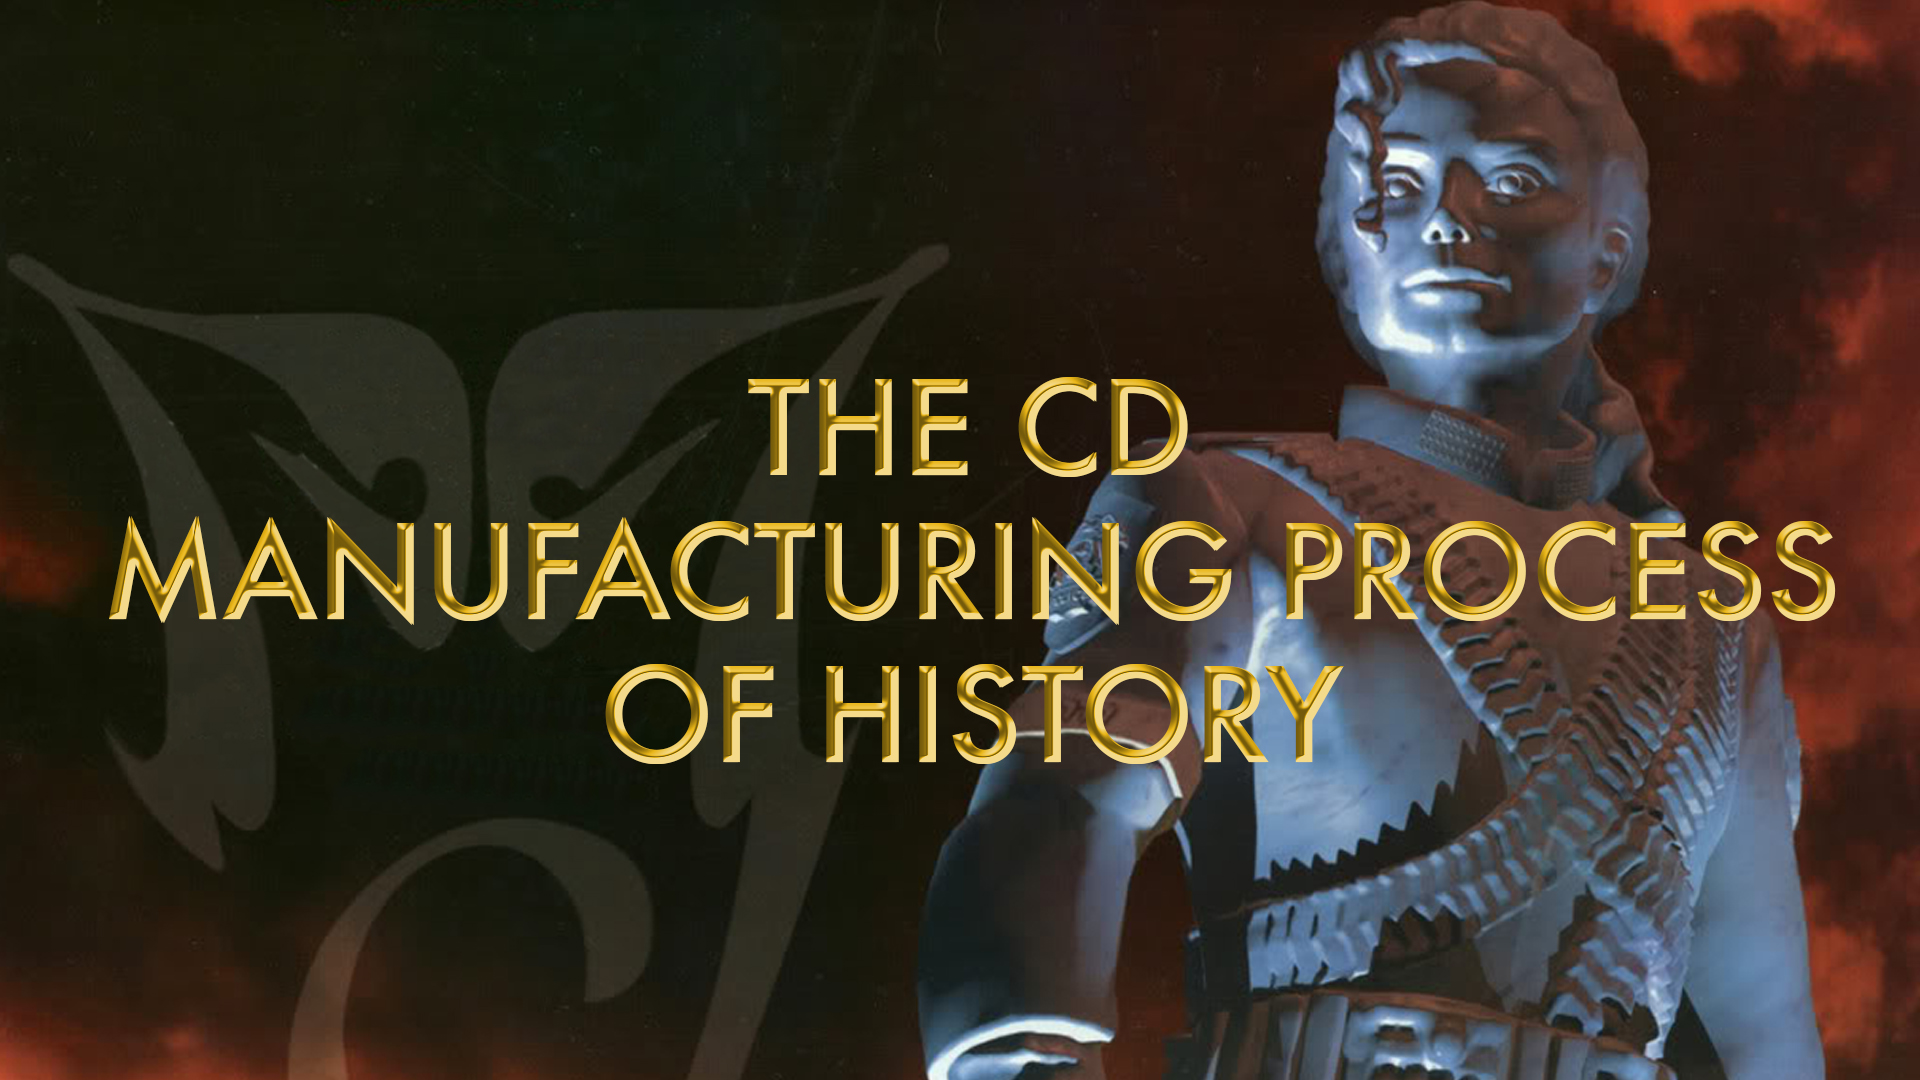 Sony Manufacturing Process Michael Jackson History Album Video Production